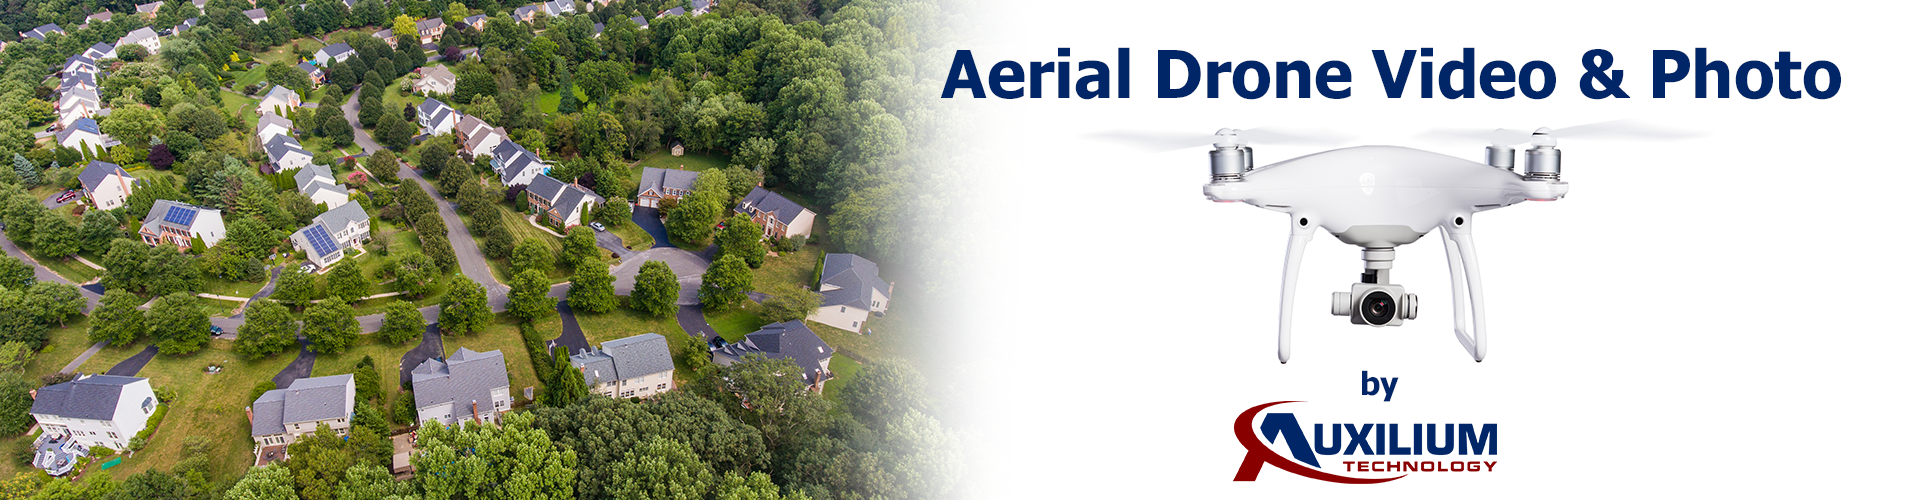 auxilium-drone_page_banner_1